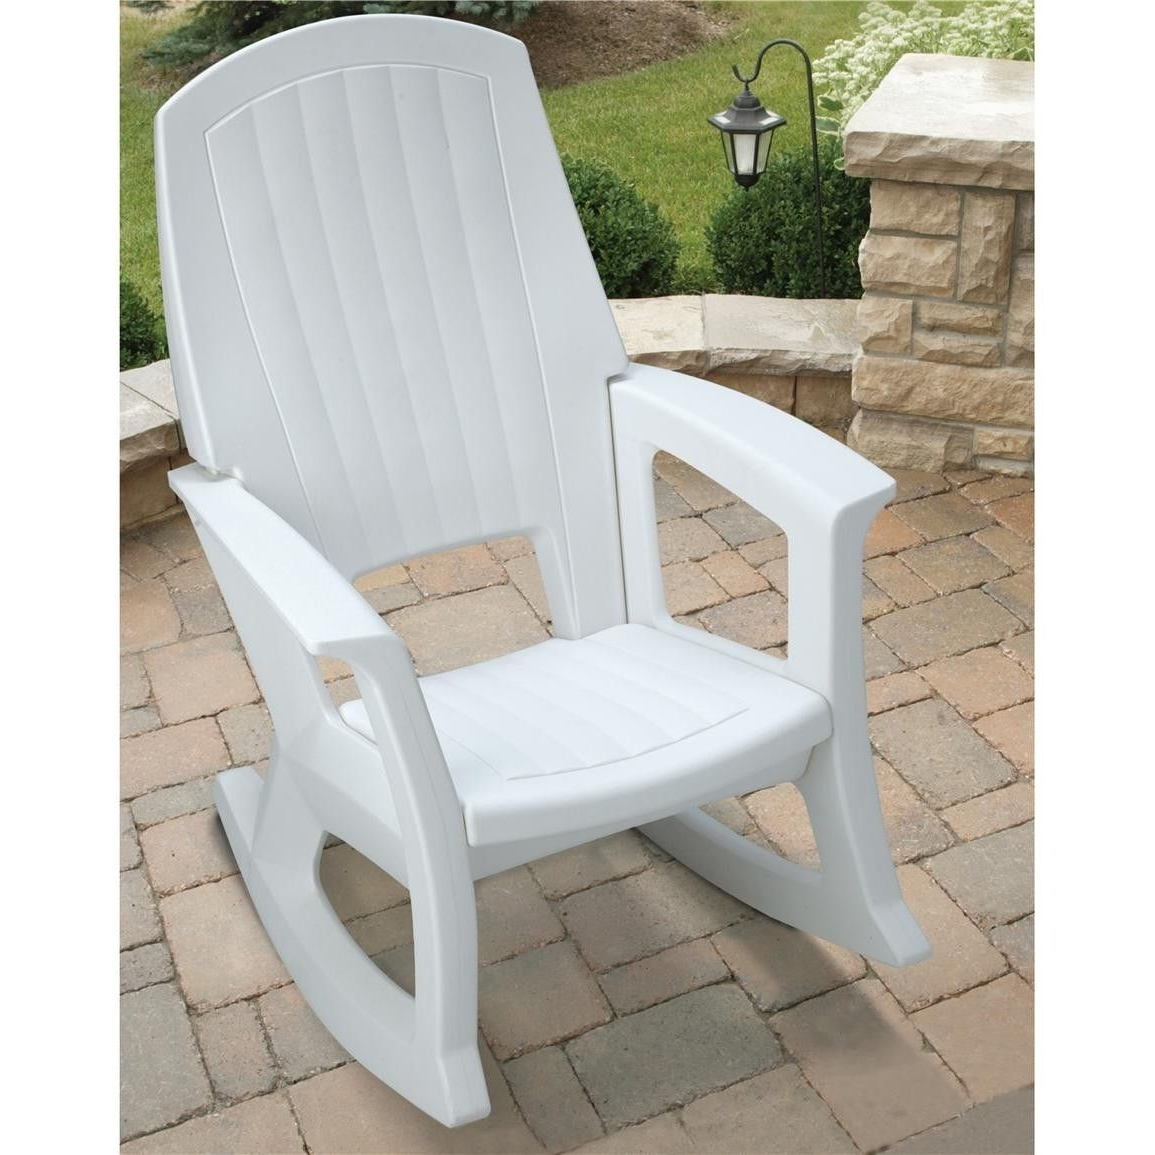 Widely Used Small Patio Rocking Chairs For Semco Plastics White Resin Outdoor Patio Rocking Chair Semw : Rural (View 15 of 15)